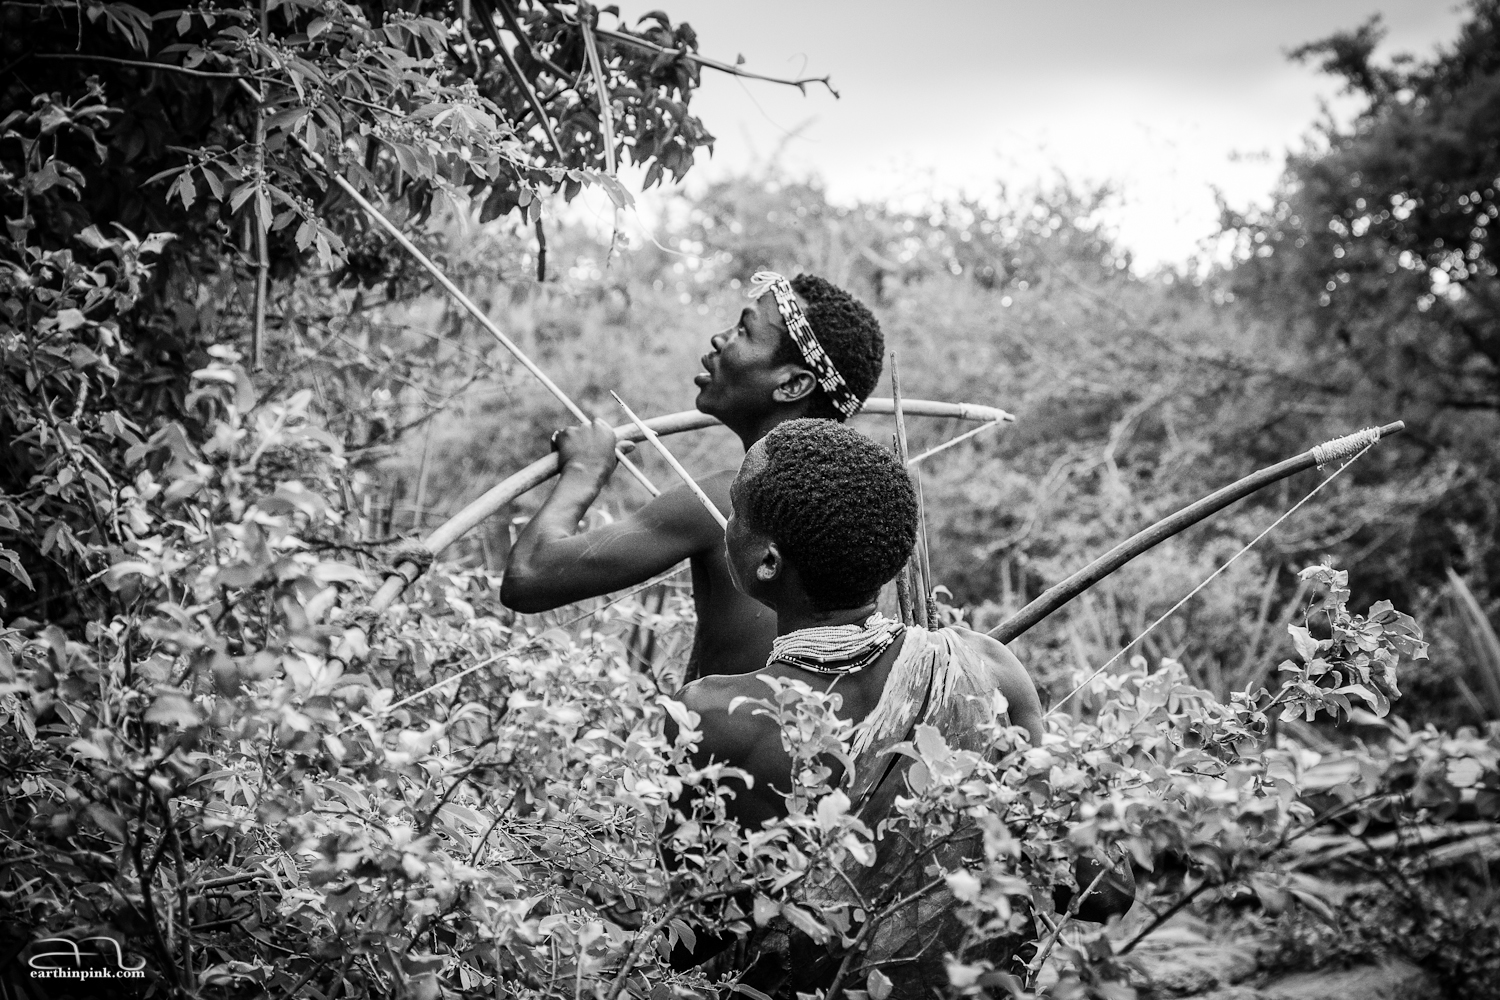 Hadzabe bushmen hunting for food near Lake Eyasi, Tanzania.